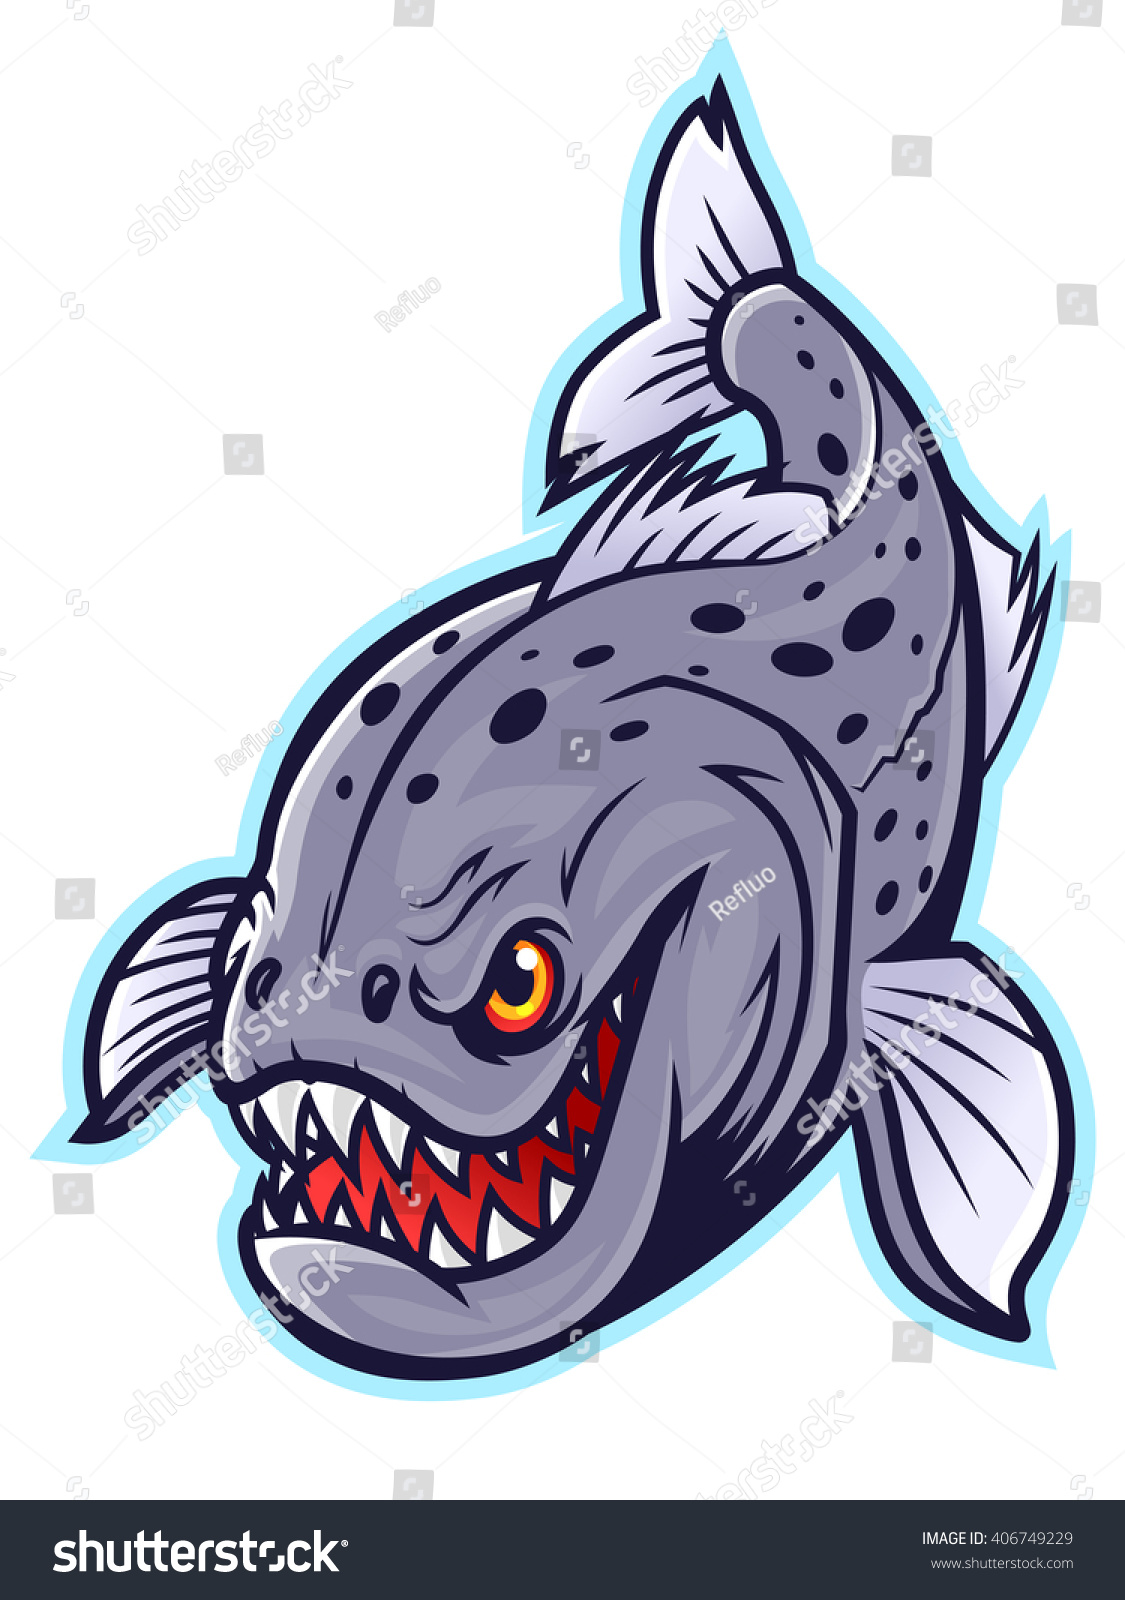 Hungry Piranha Vector de stock406749229: Shutterstock